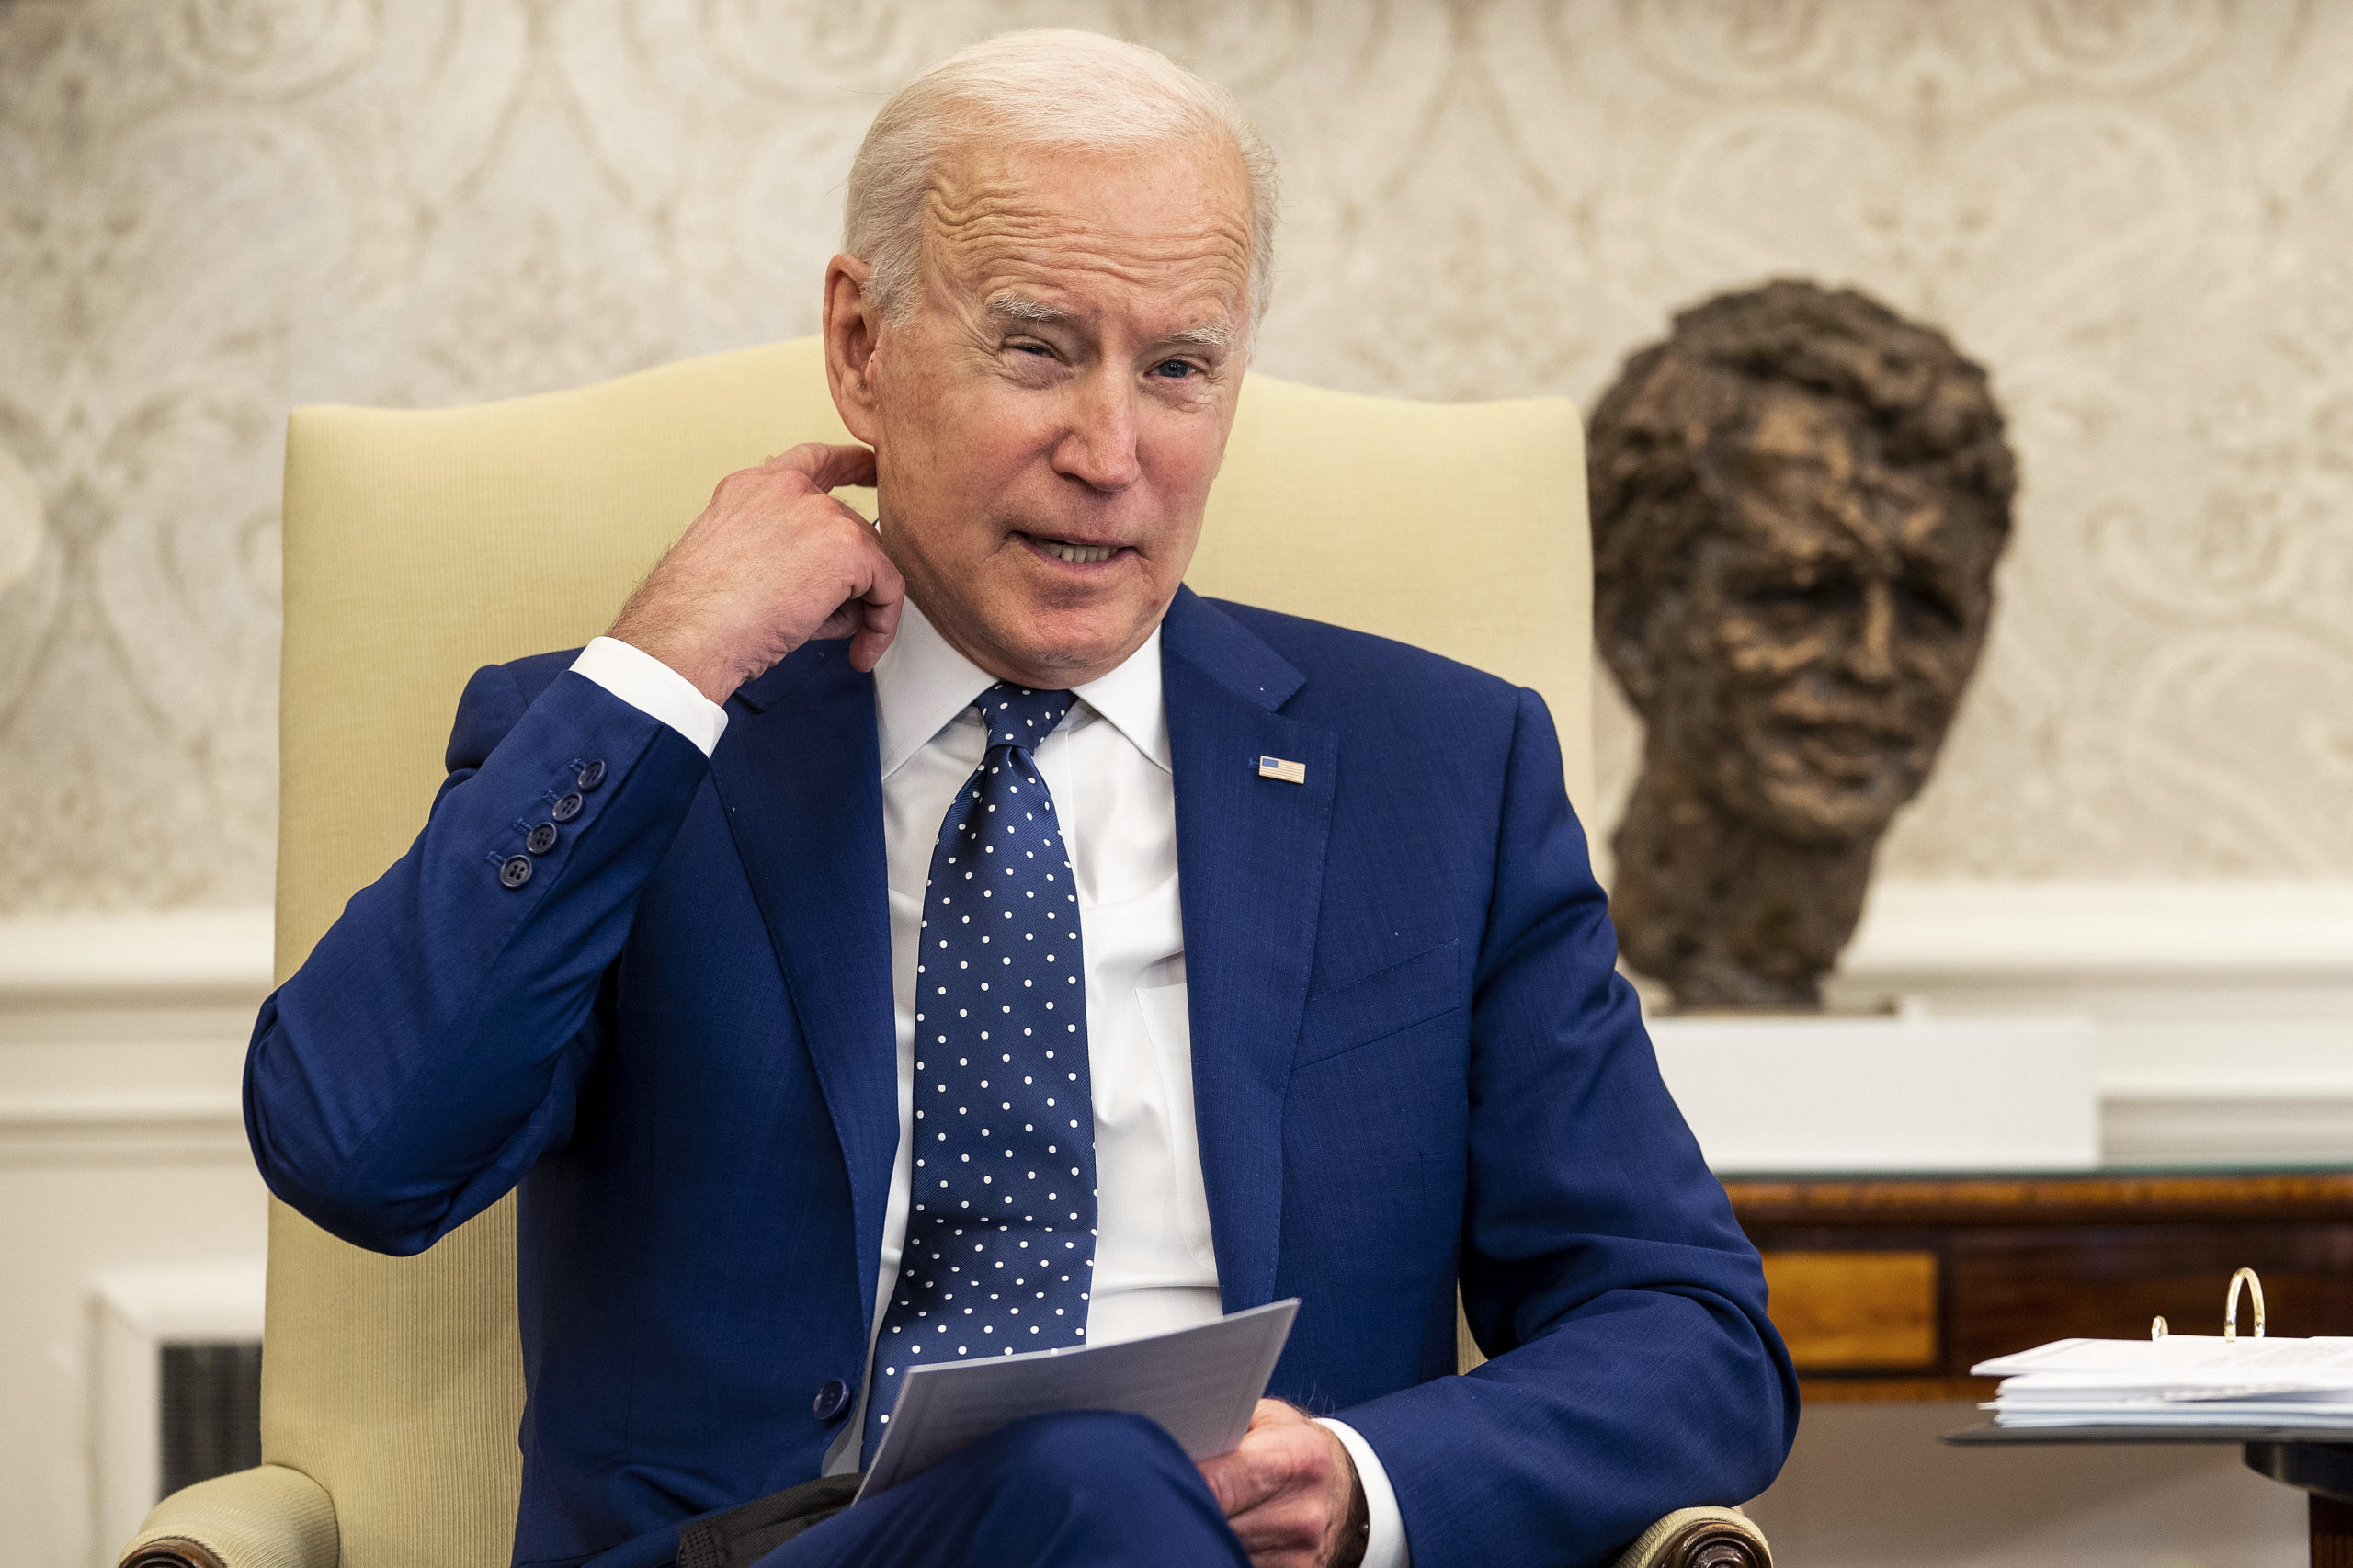 U.S. President Joe Biden meets with members of the Congressional Asian Pacific American Caucus Executive Committee in the Oval Office at the White House on April 15, 2021 in Washington, DC. (Doug Mills-Pool/Getty Images)